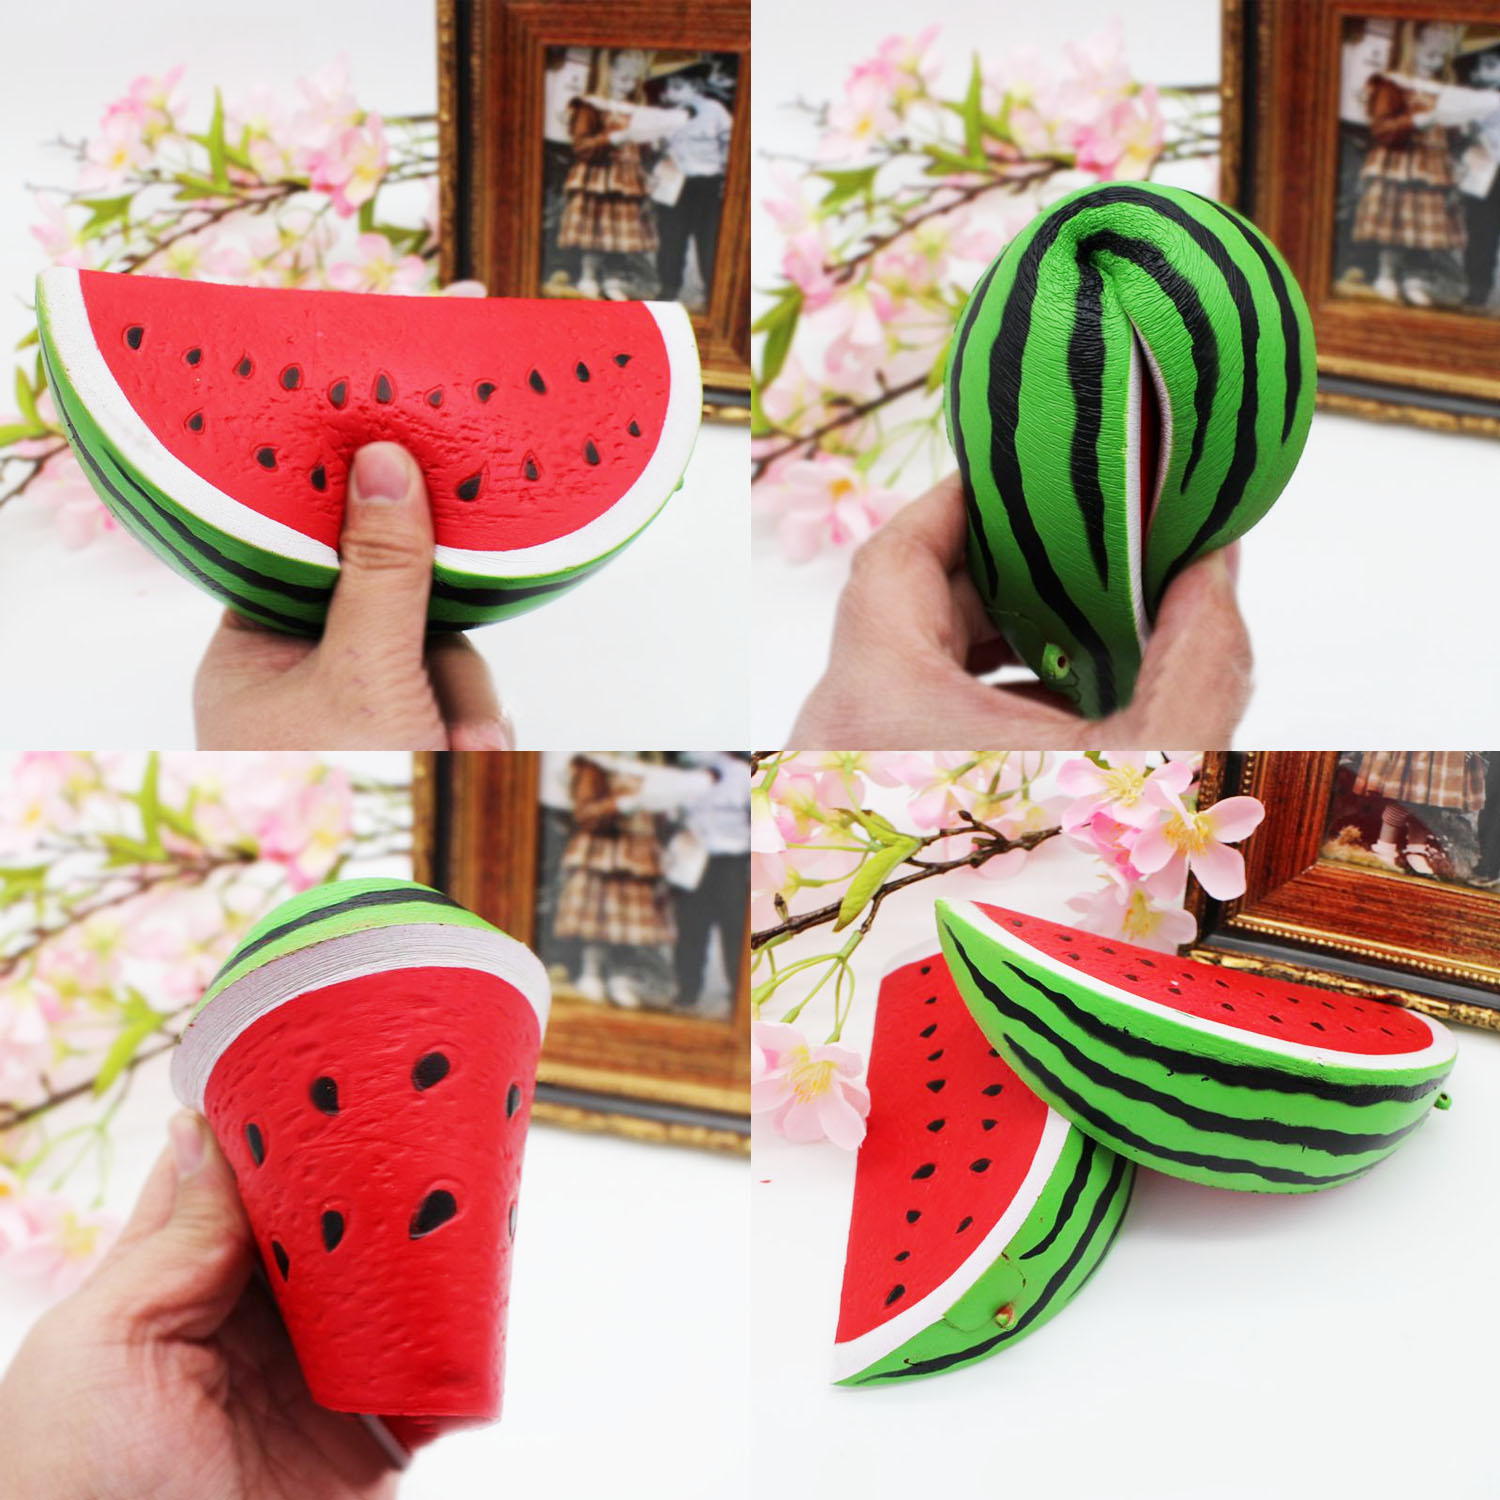 Satkago Soft Squishy Artificial Watermelon Fruit Toy Slow Rising for Children Adults Relieves Stress Anxiety Cabinet Decoration